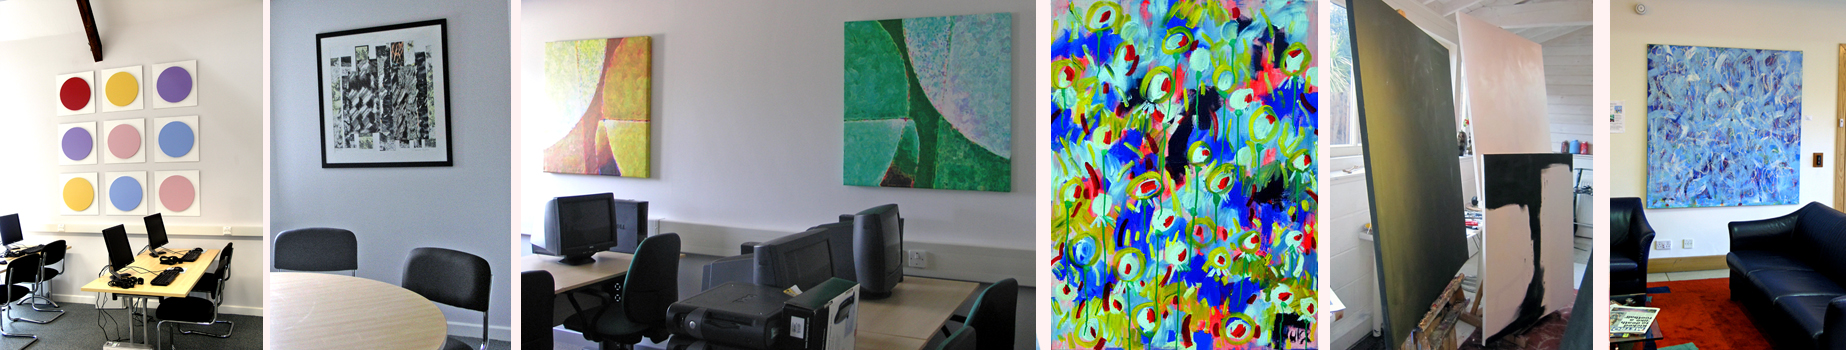 Art for offices paintings for sale paintings for offices paintings for hotels paintings for public spaces paintings for restaurants paintings for sale